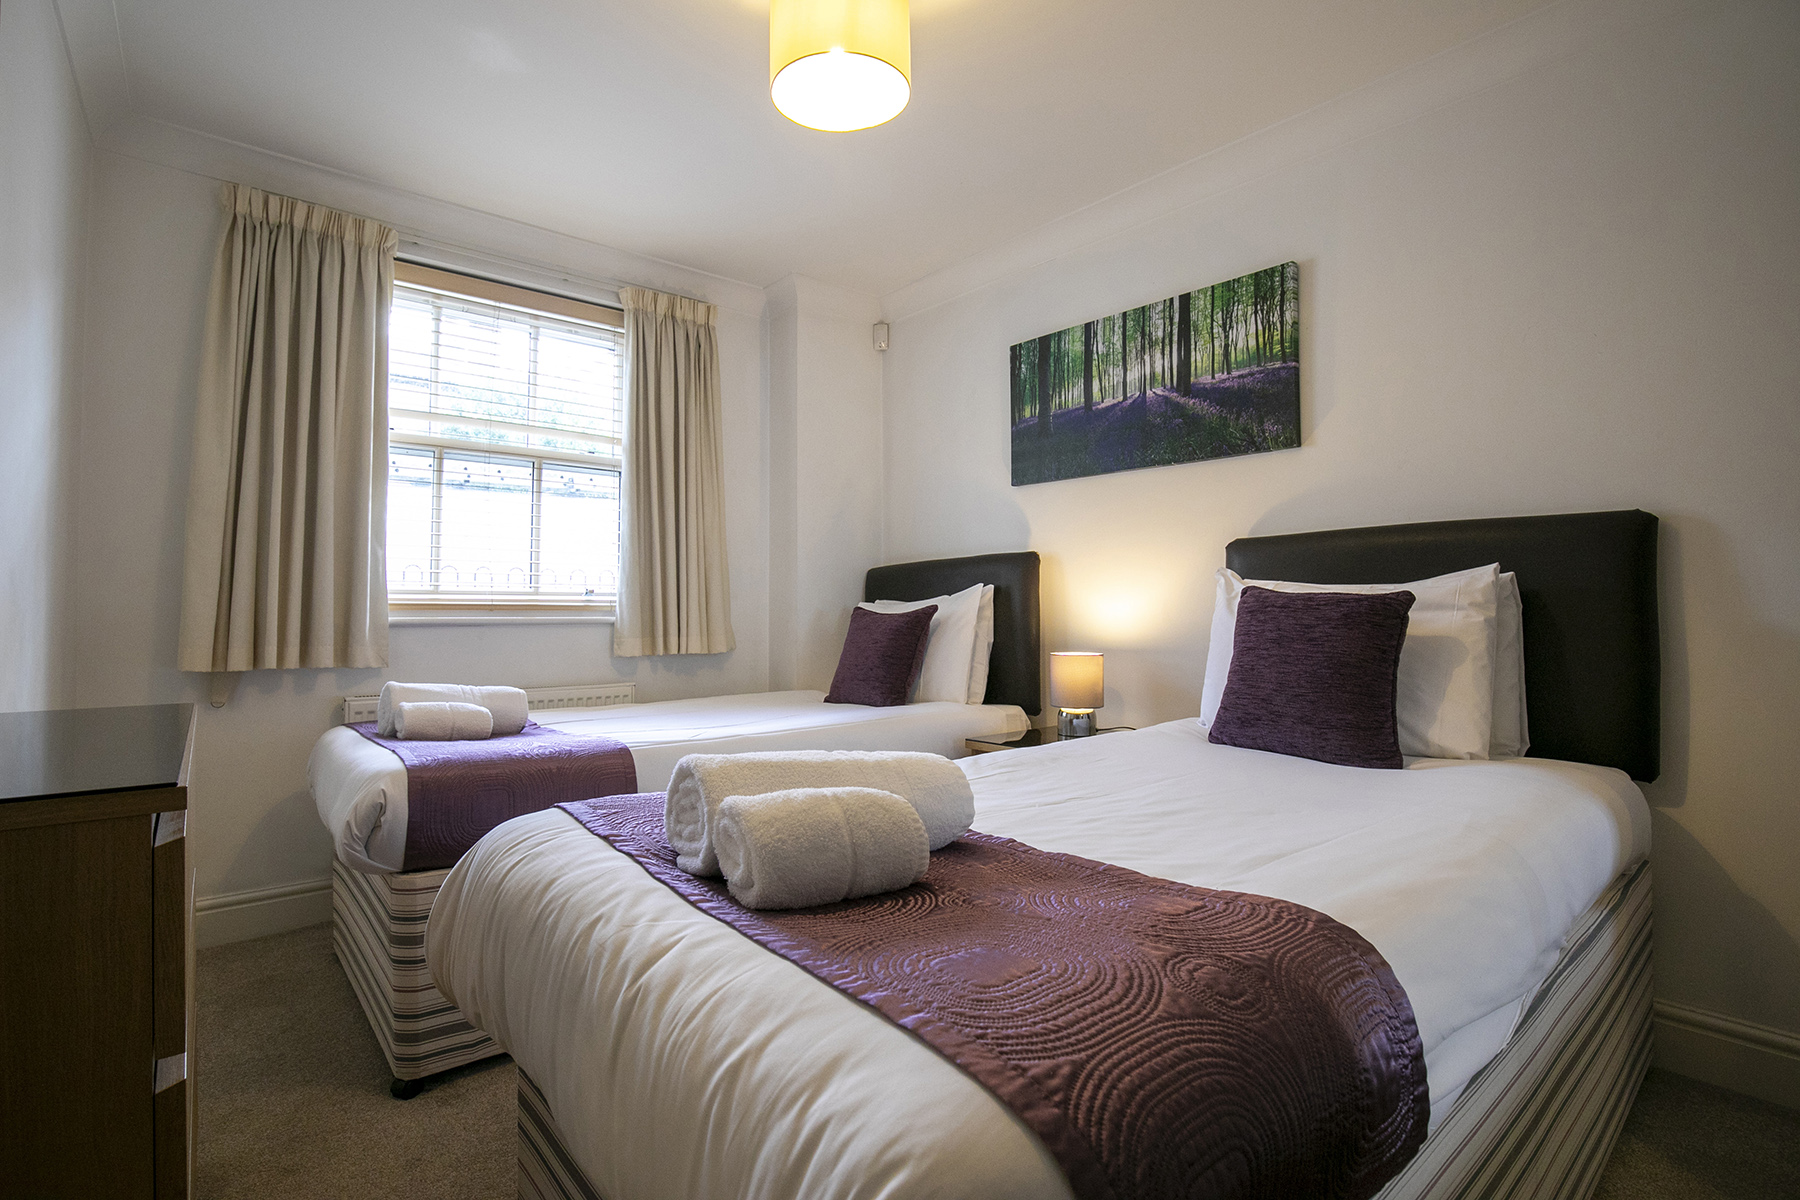 Twin beds at Flexi-Lets The Bars Apartments, Centre, Guildford